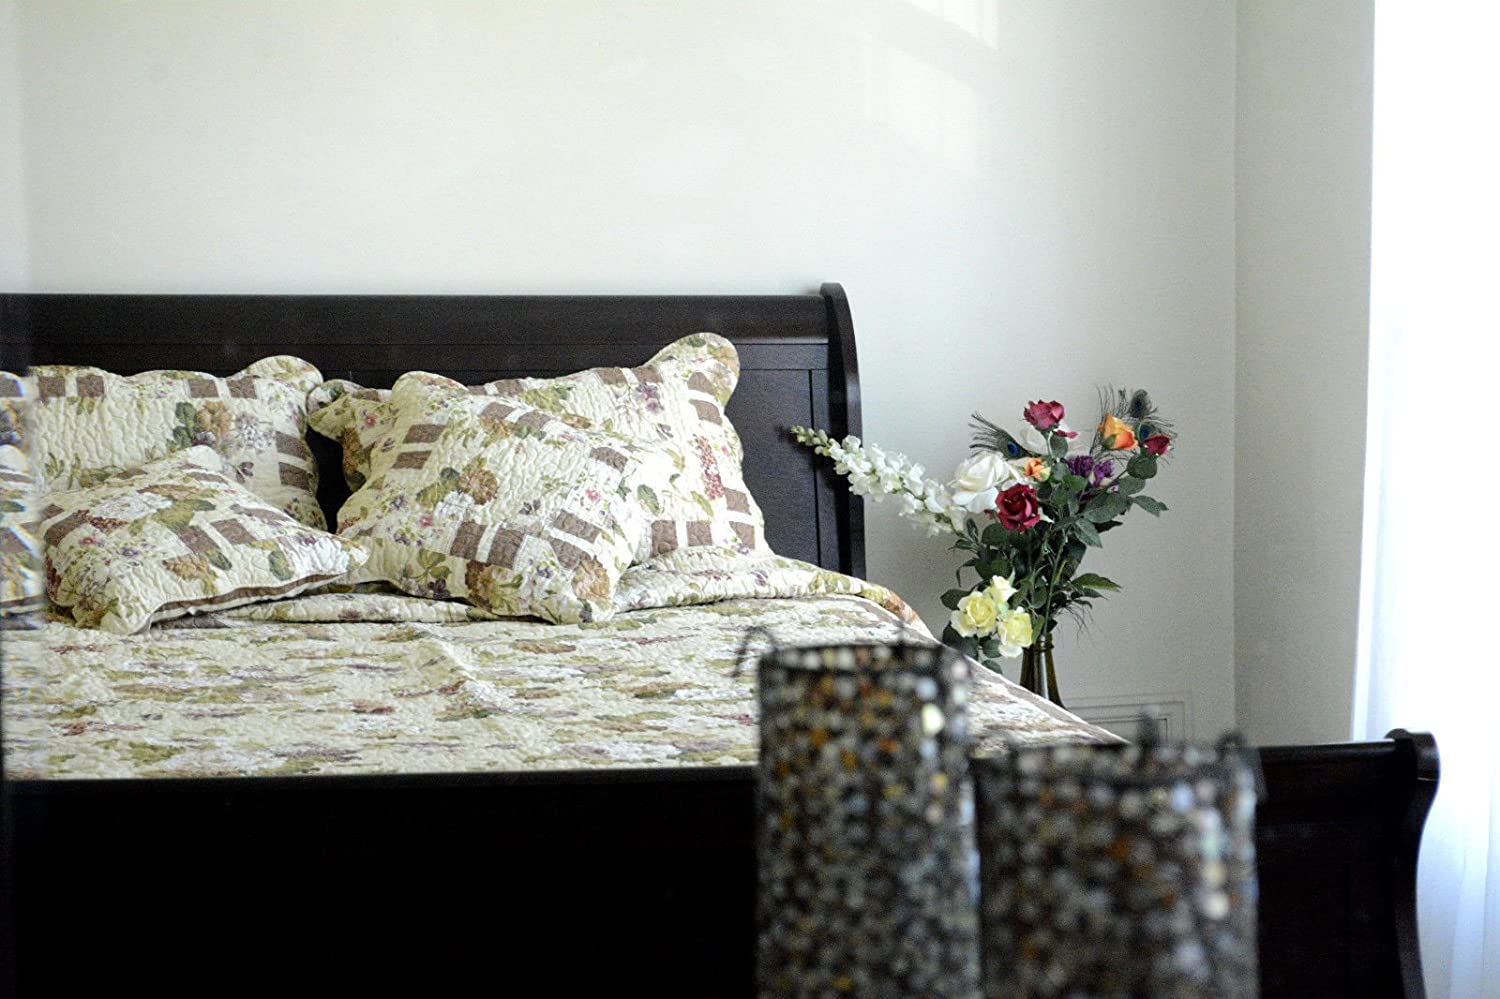 DaDa Bedding Floral Print Motif Patchwork Rose Garden Cotton Quilted Pillow Cases Covers Shams Set